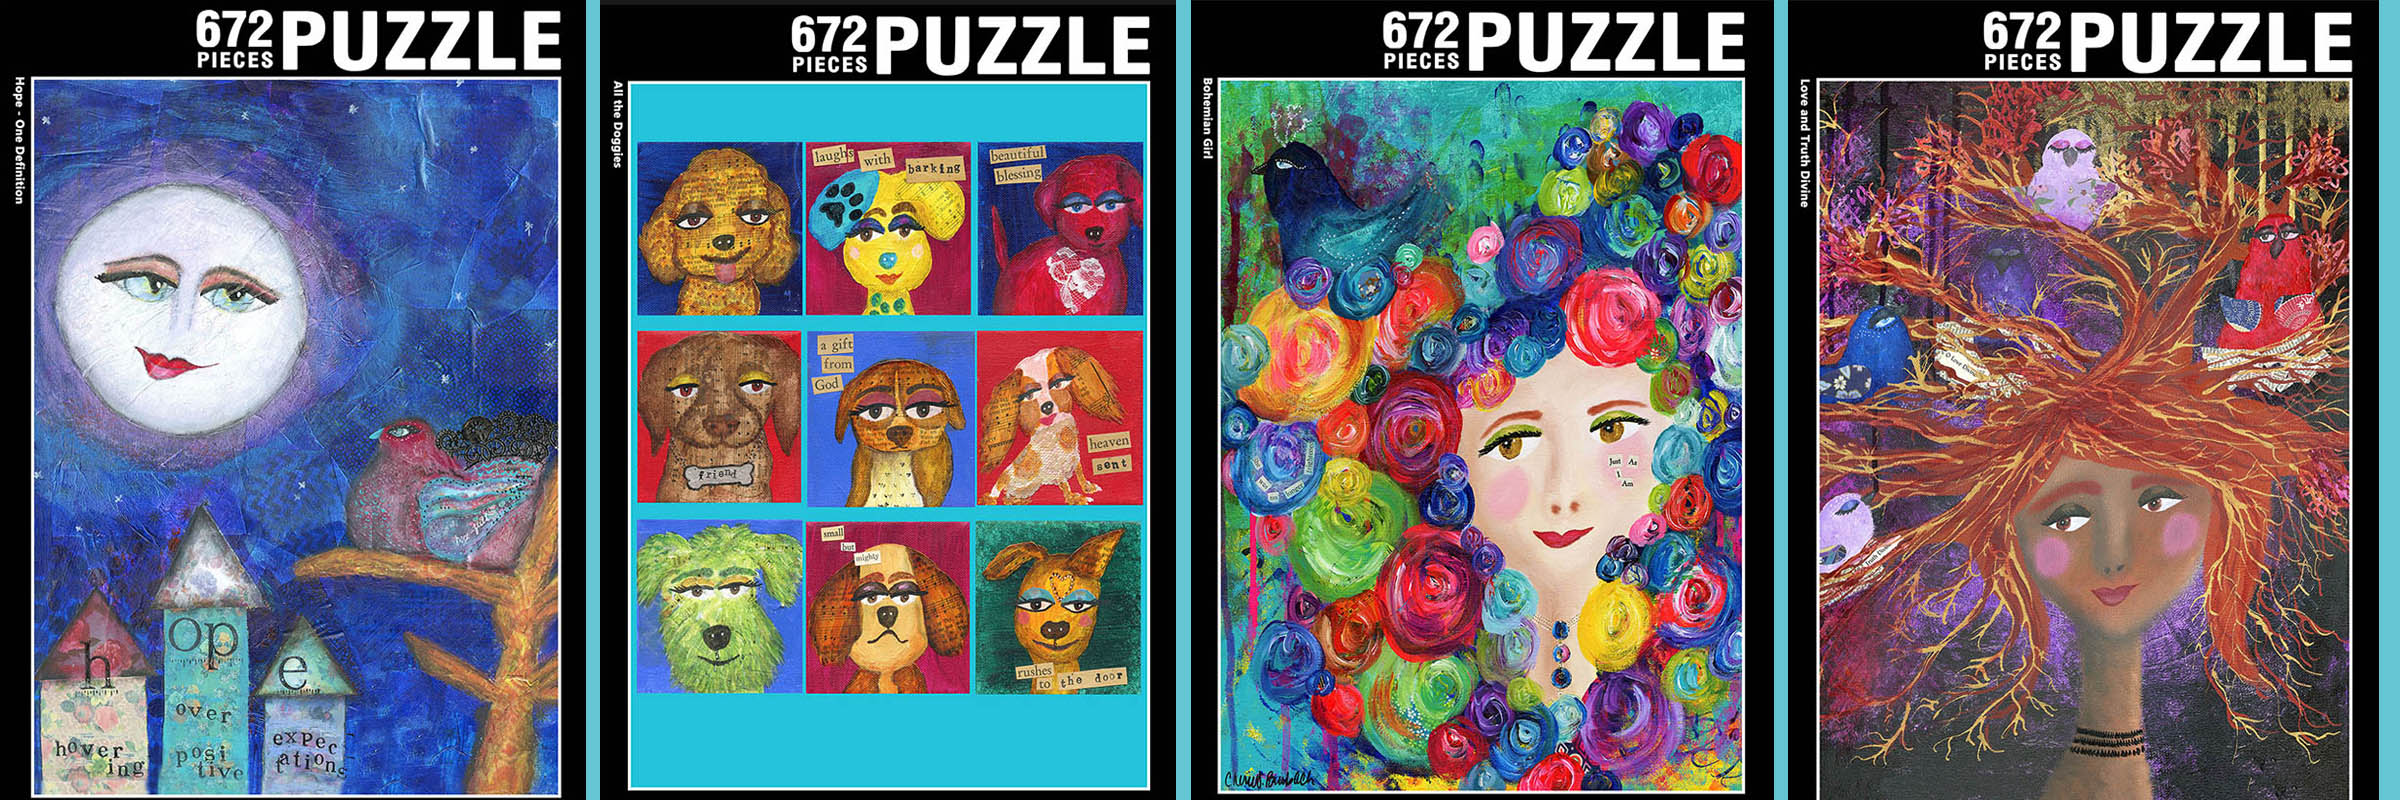 puzzles home page